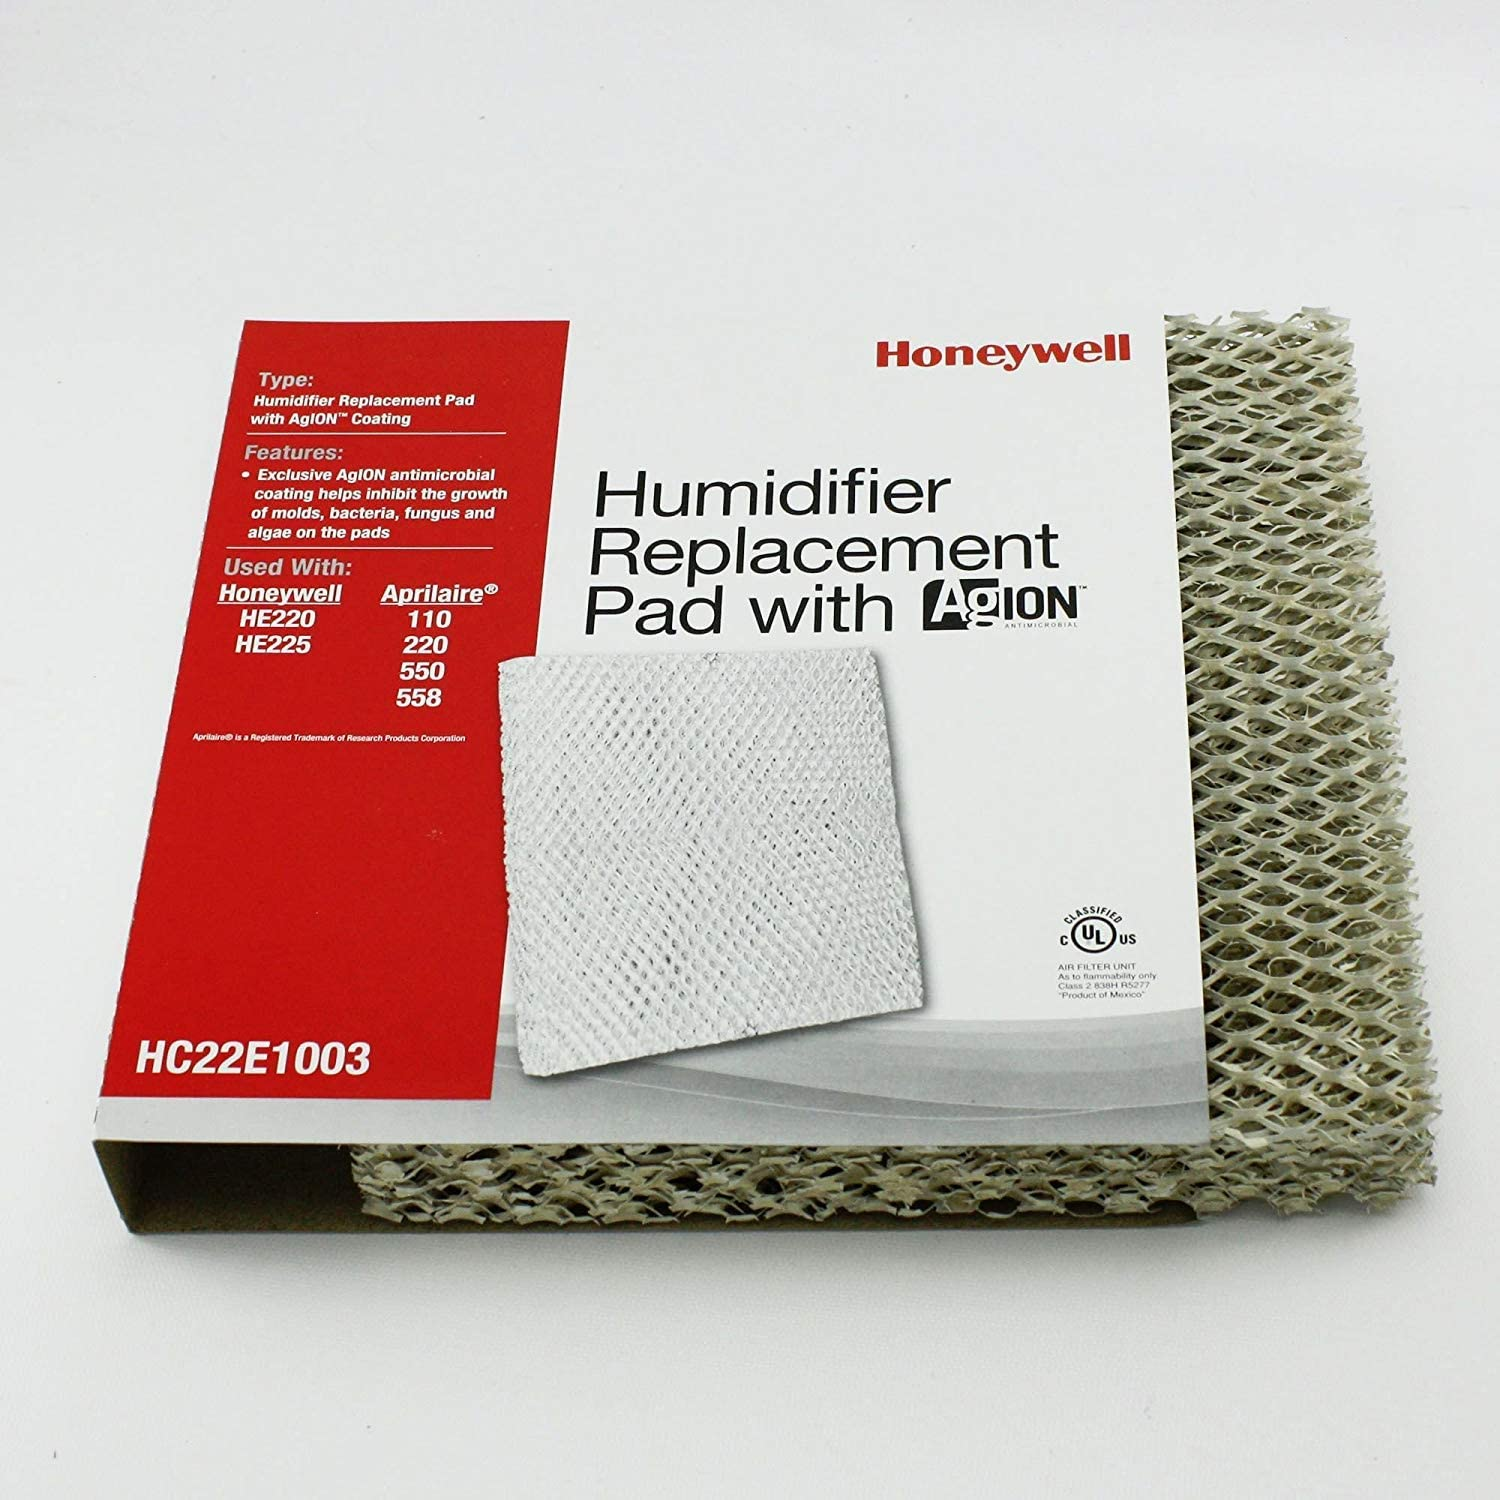 How to change a humidifier pad on an Aprilaire 550 humidifier.